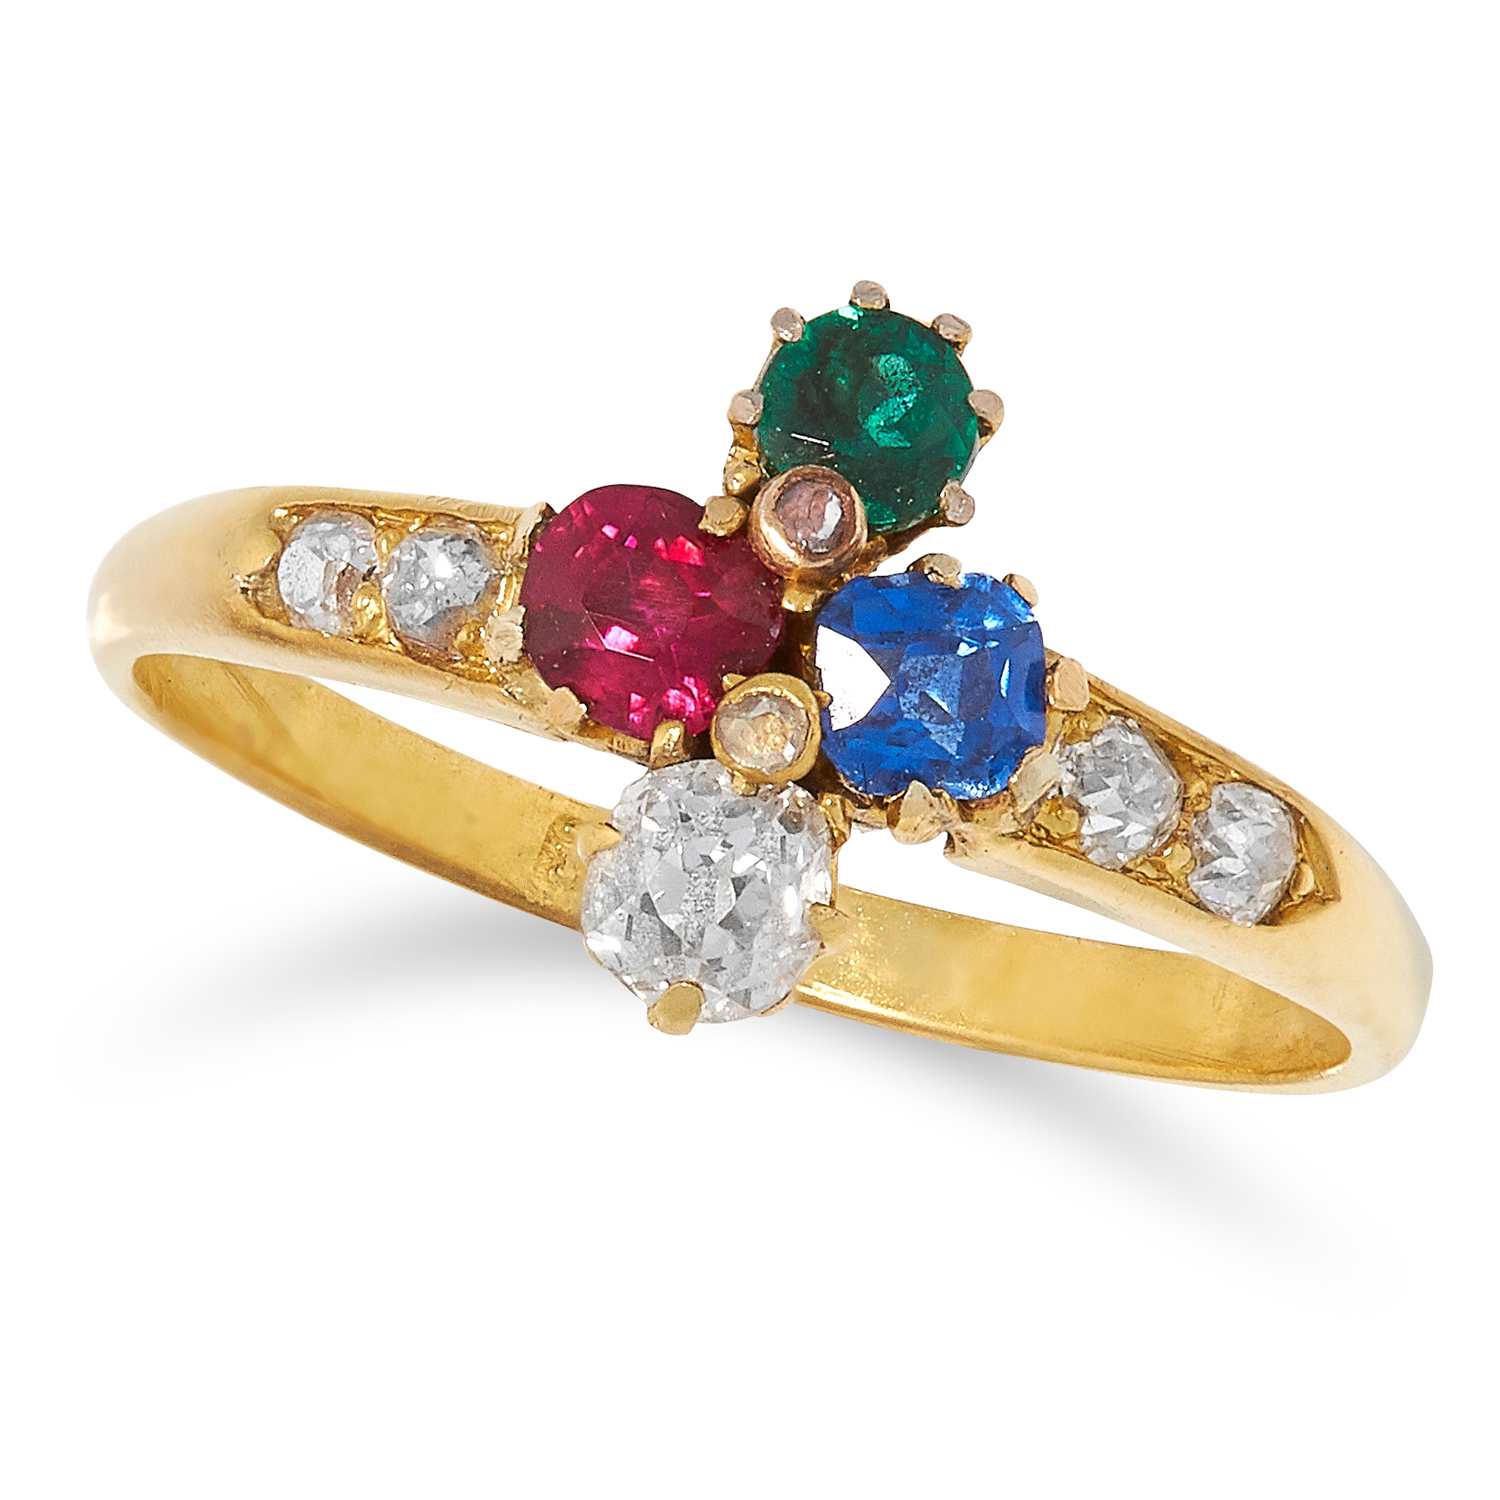 GEMSET RING set with round cut ruby, sapphire, emerald and old cut diamonds, size N / 7, 2.5g.